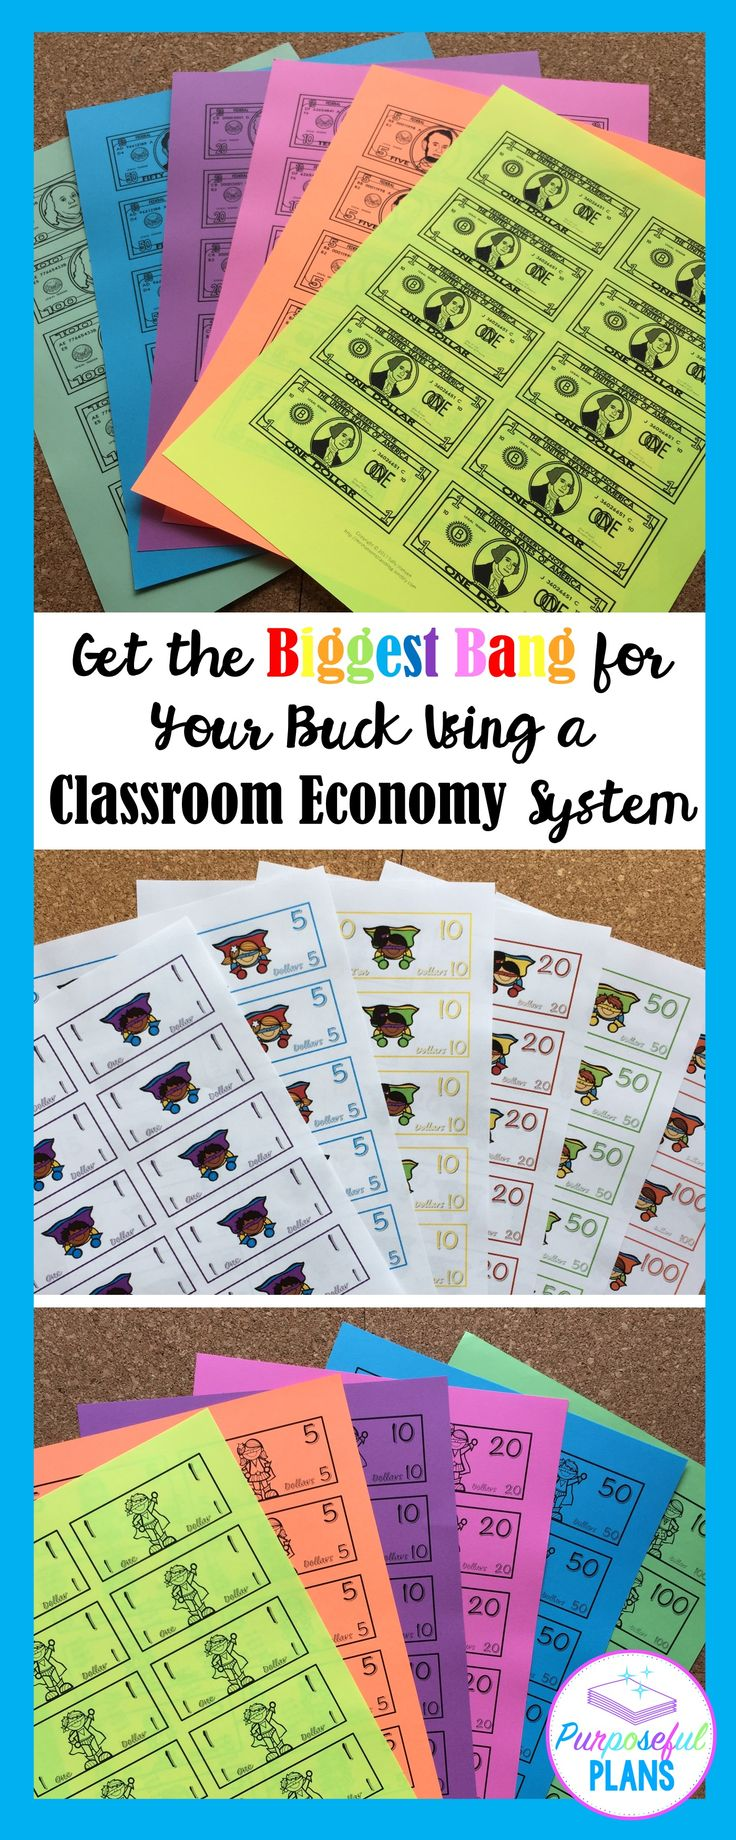 Get the Biggest Bang for Your Buck Using a Classroom Economy System – Fiona Lindsay